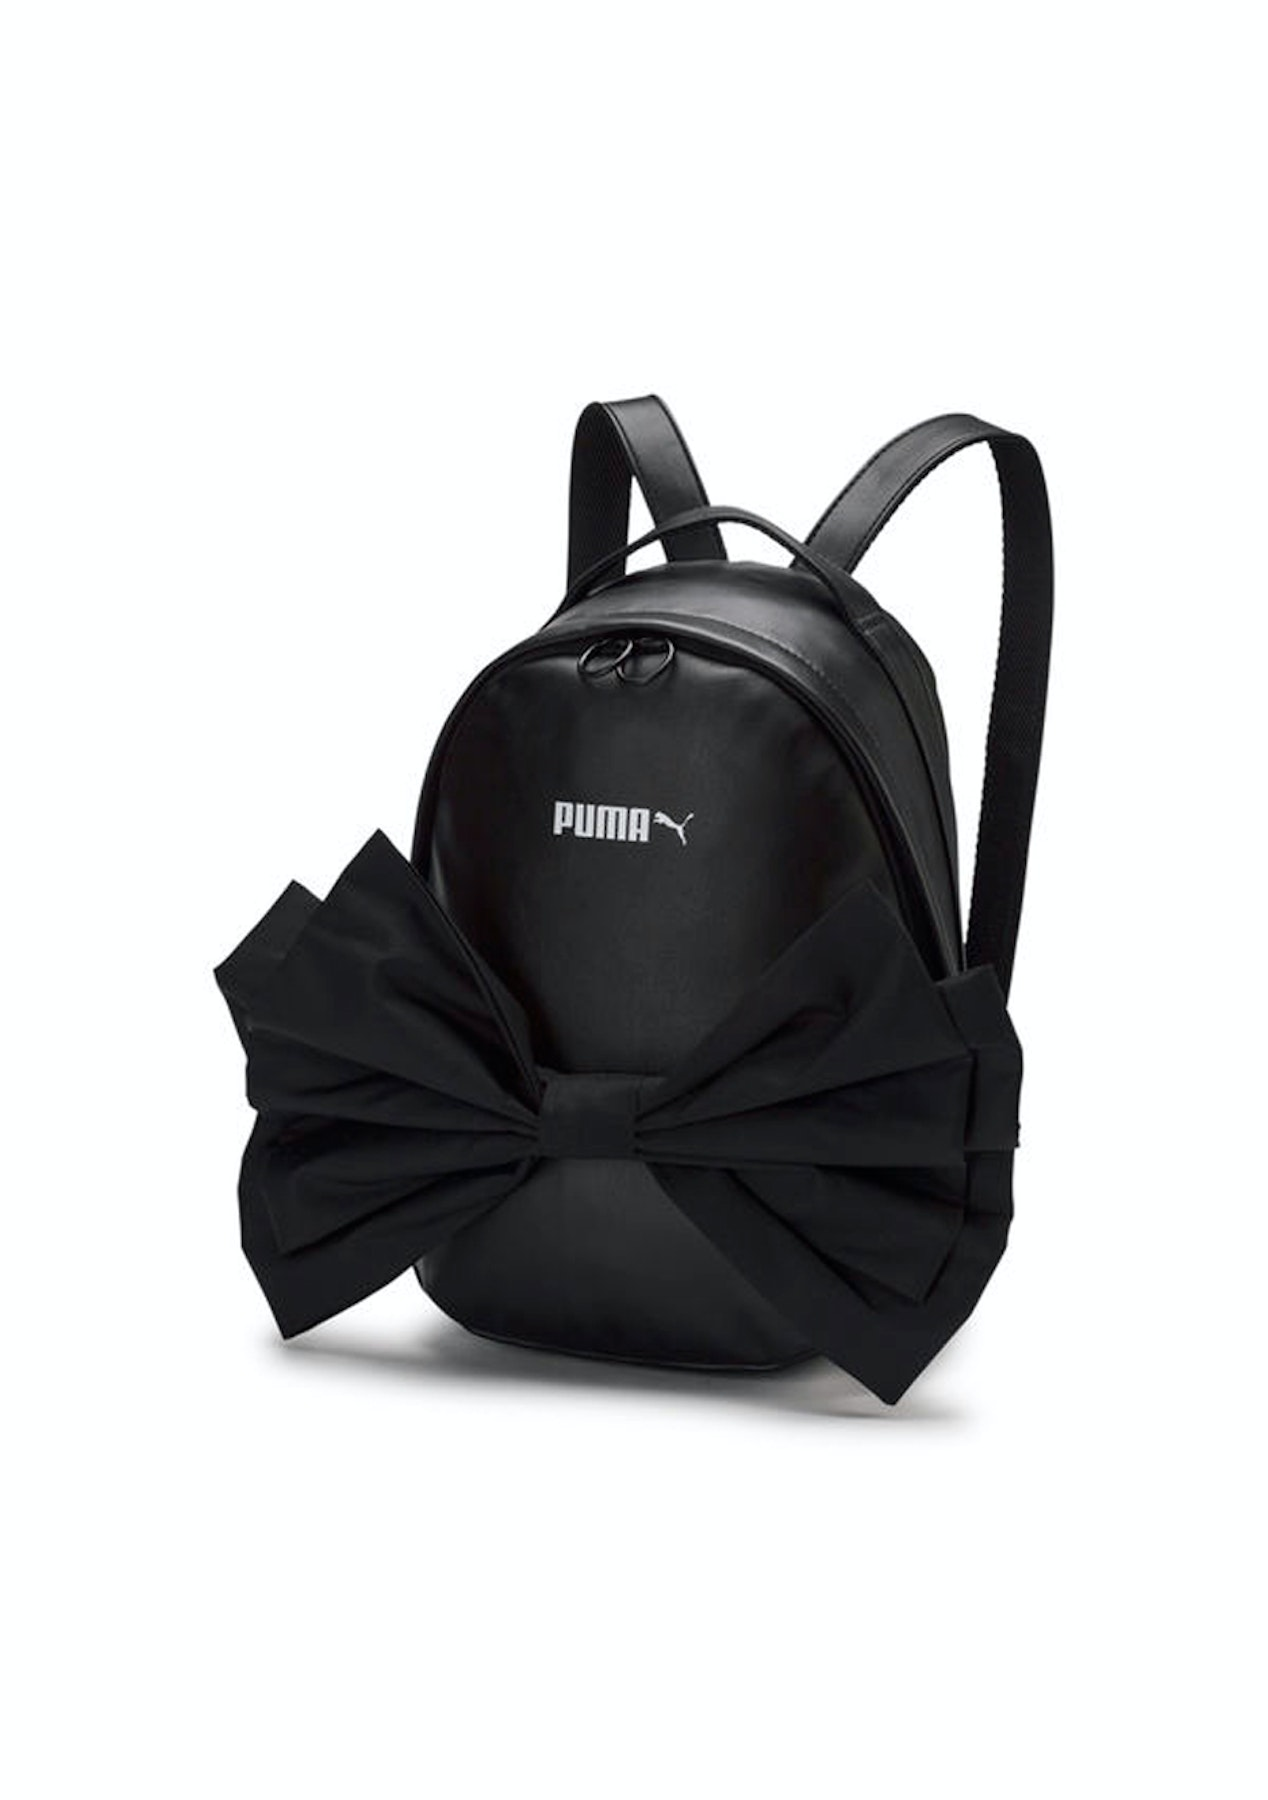 Puma Womens - Prime Archive Backpack Bow Black - Puma Womens   Kids Up to  60% Off - Onceit 3a4fde148f1be